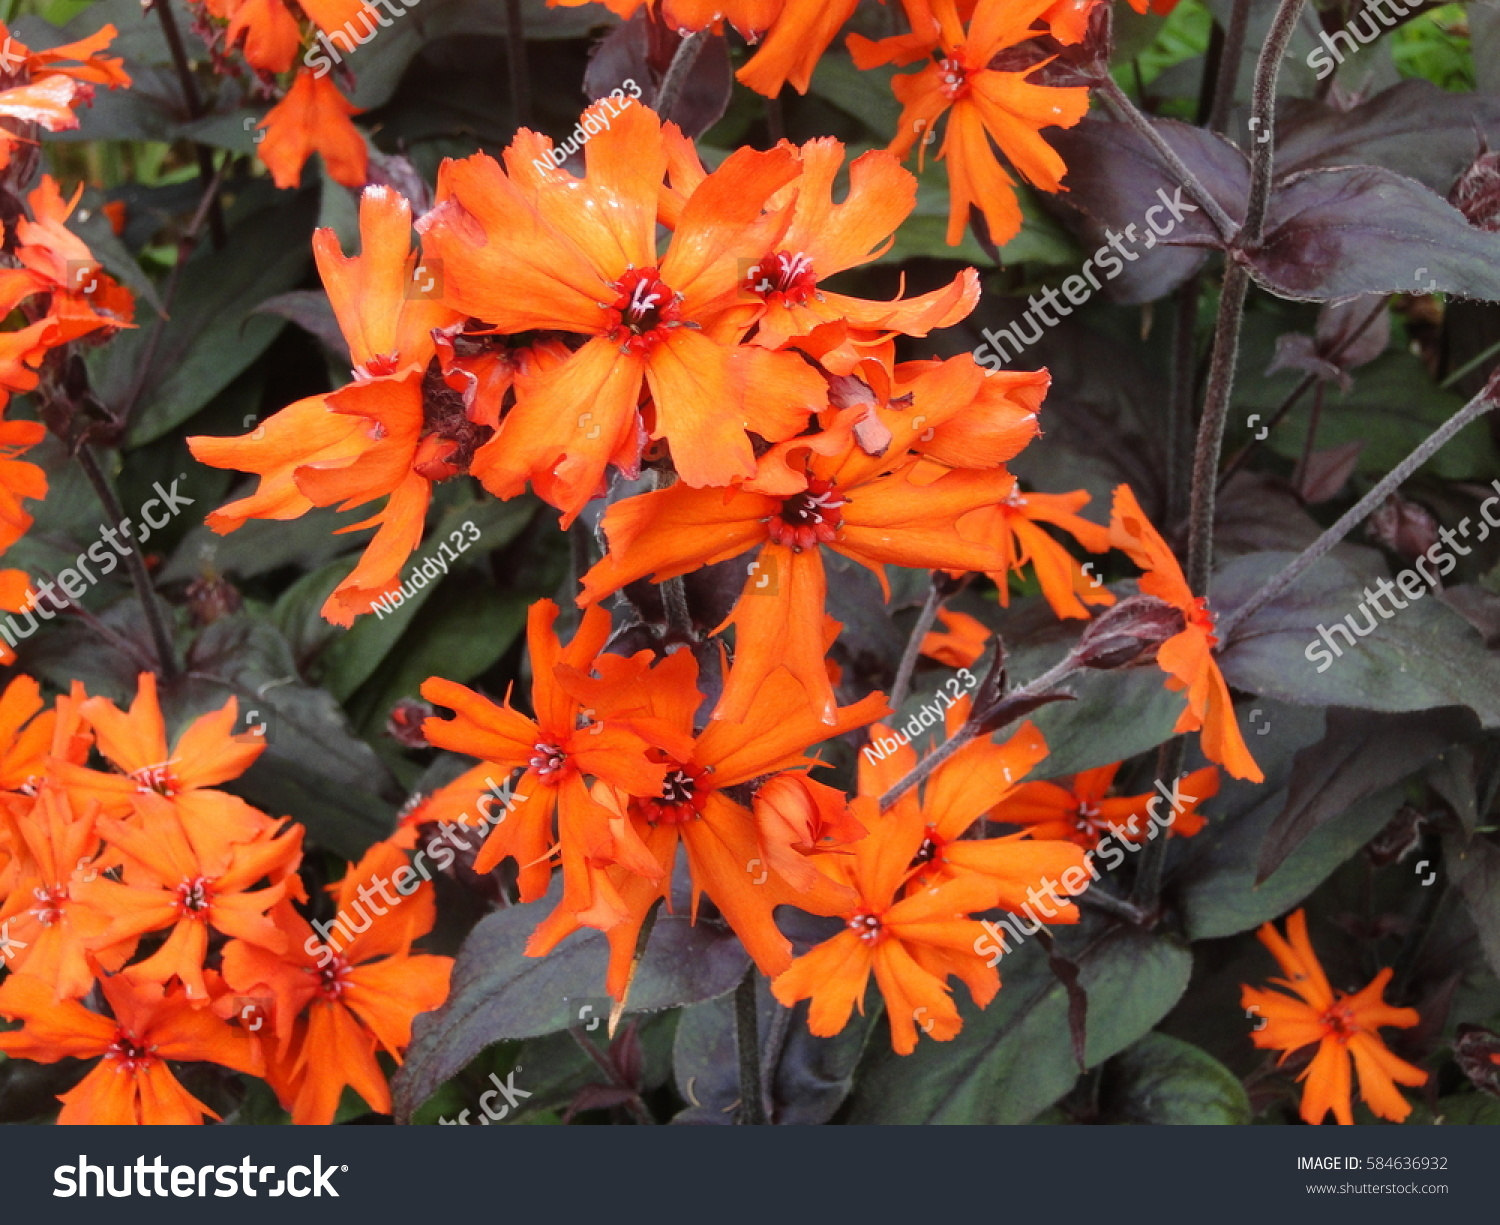 View beautiful flowers blooming national garden stock photo view of beautiful flowers blooming in a national garden under sunlight at the middle of summer izmirmasajfo Images